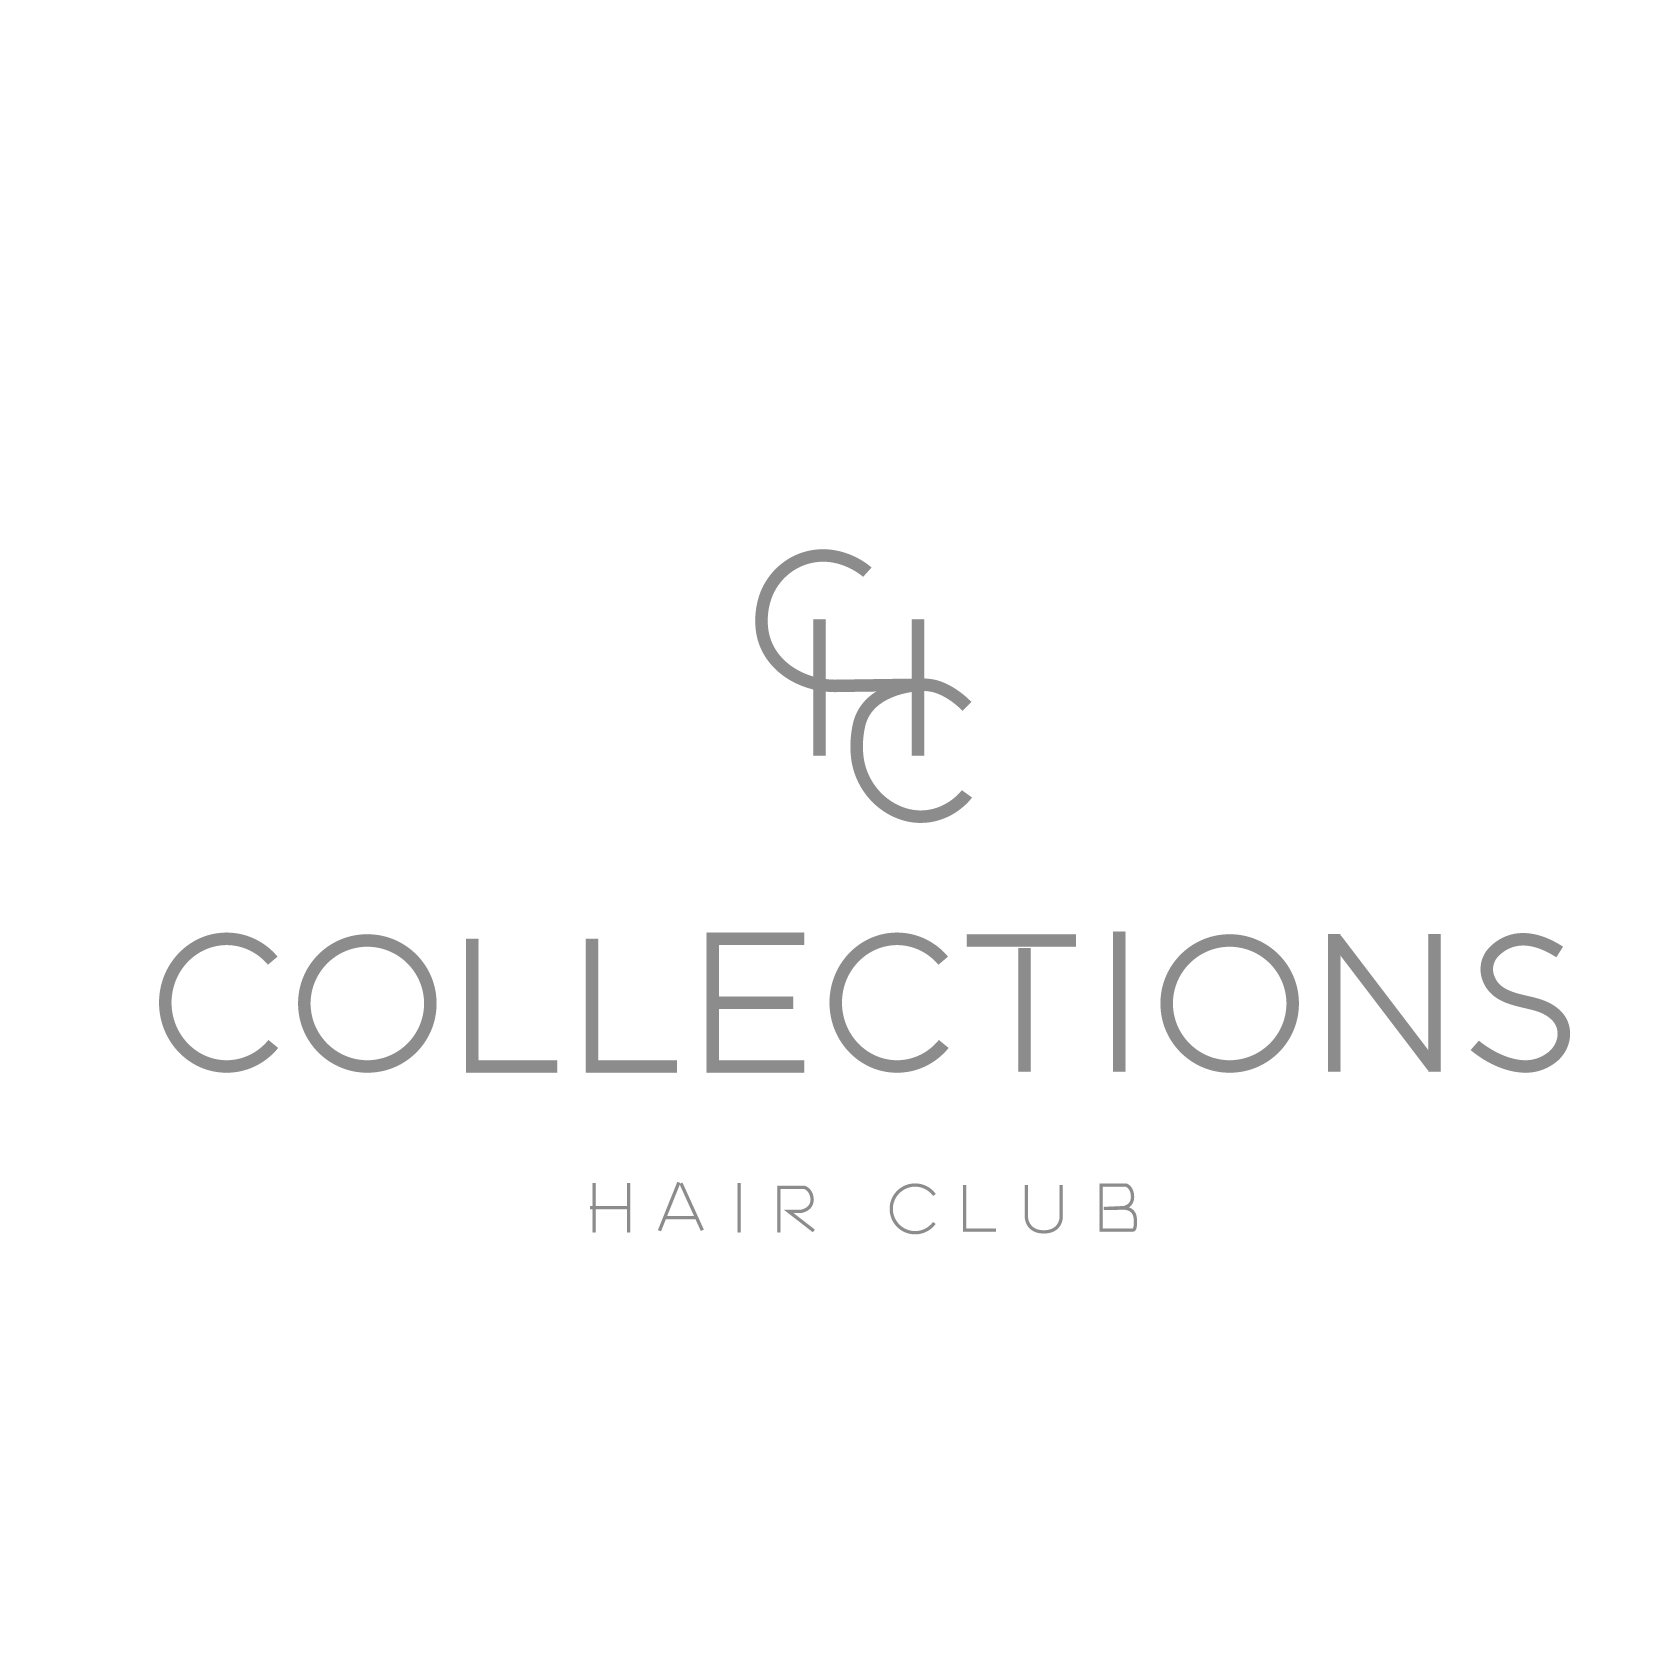 Collections-01-min